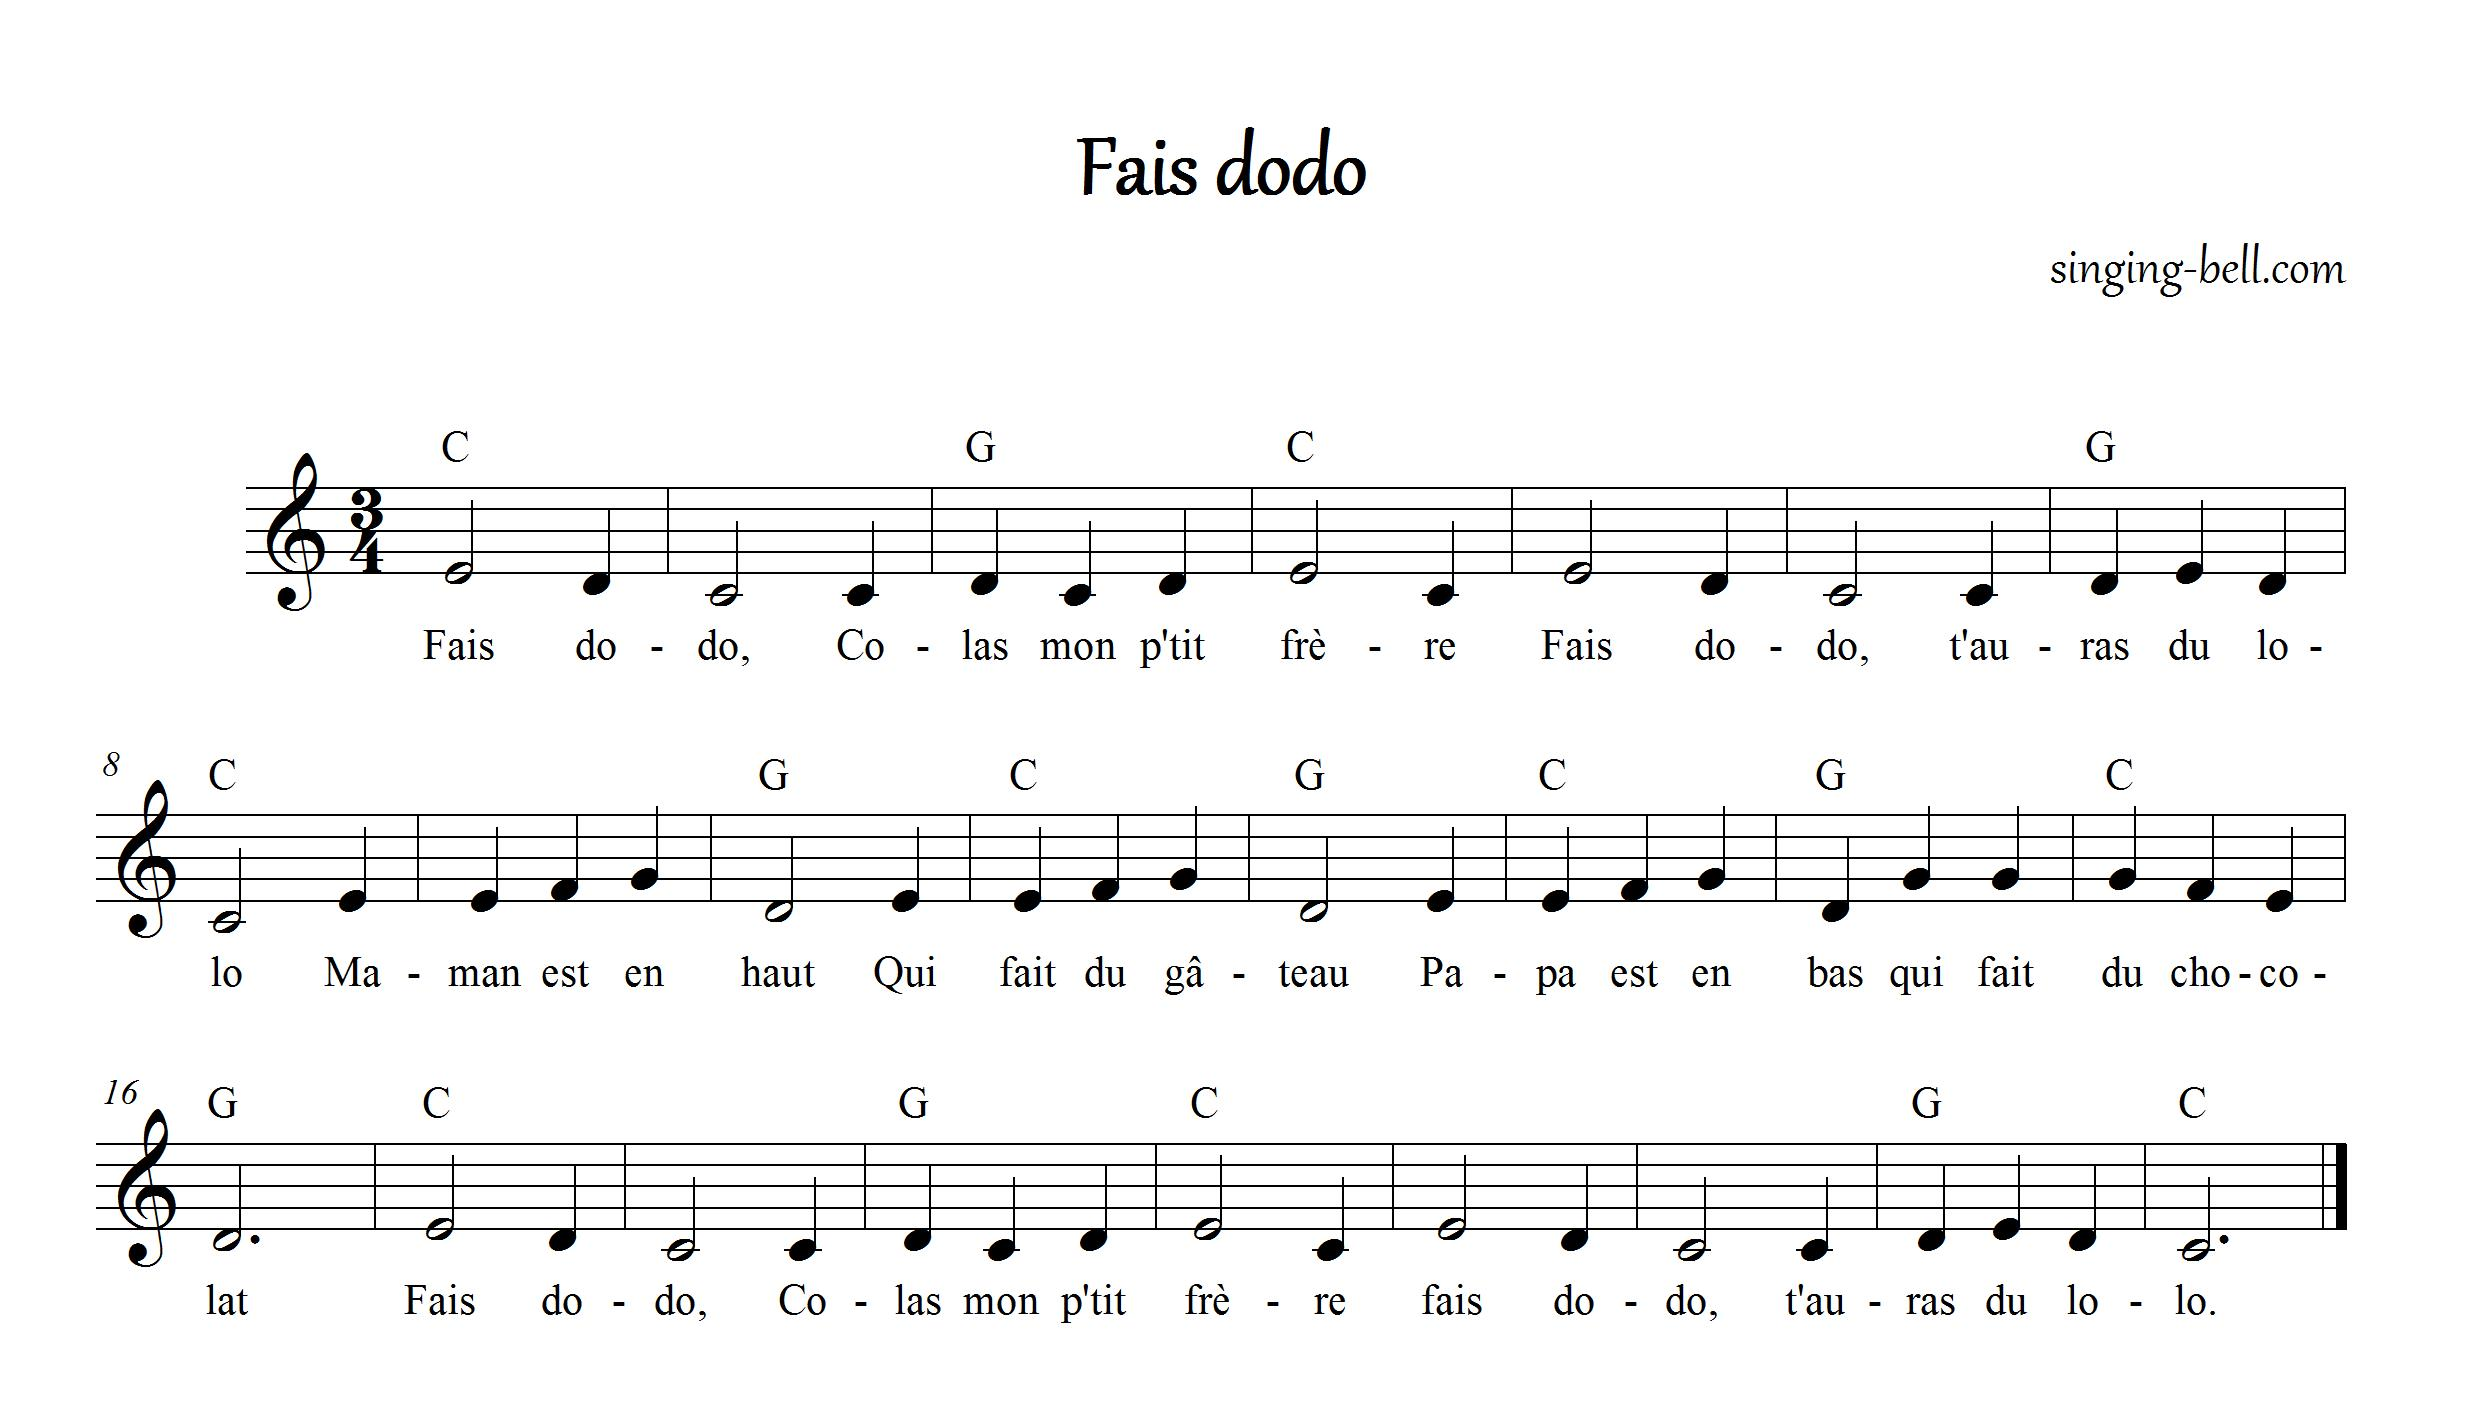 Fais Dodo Singing-Bell